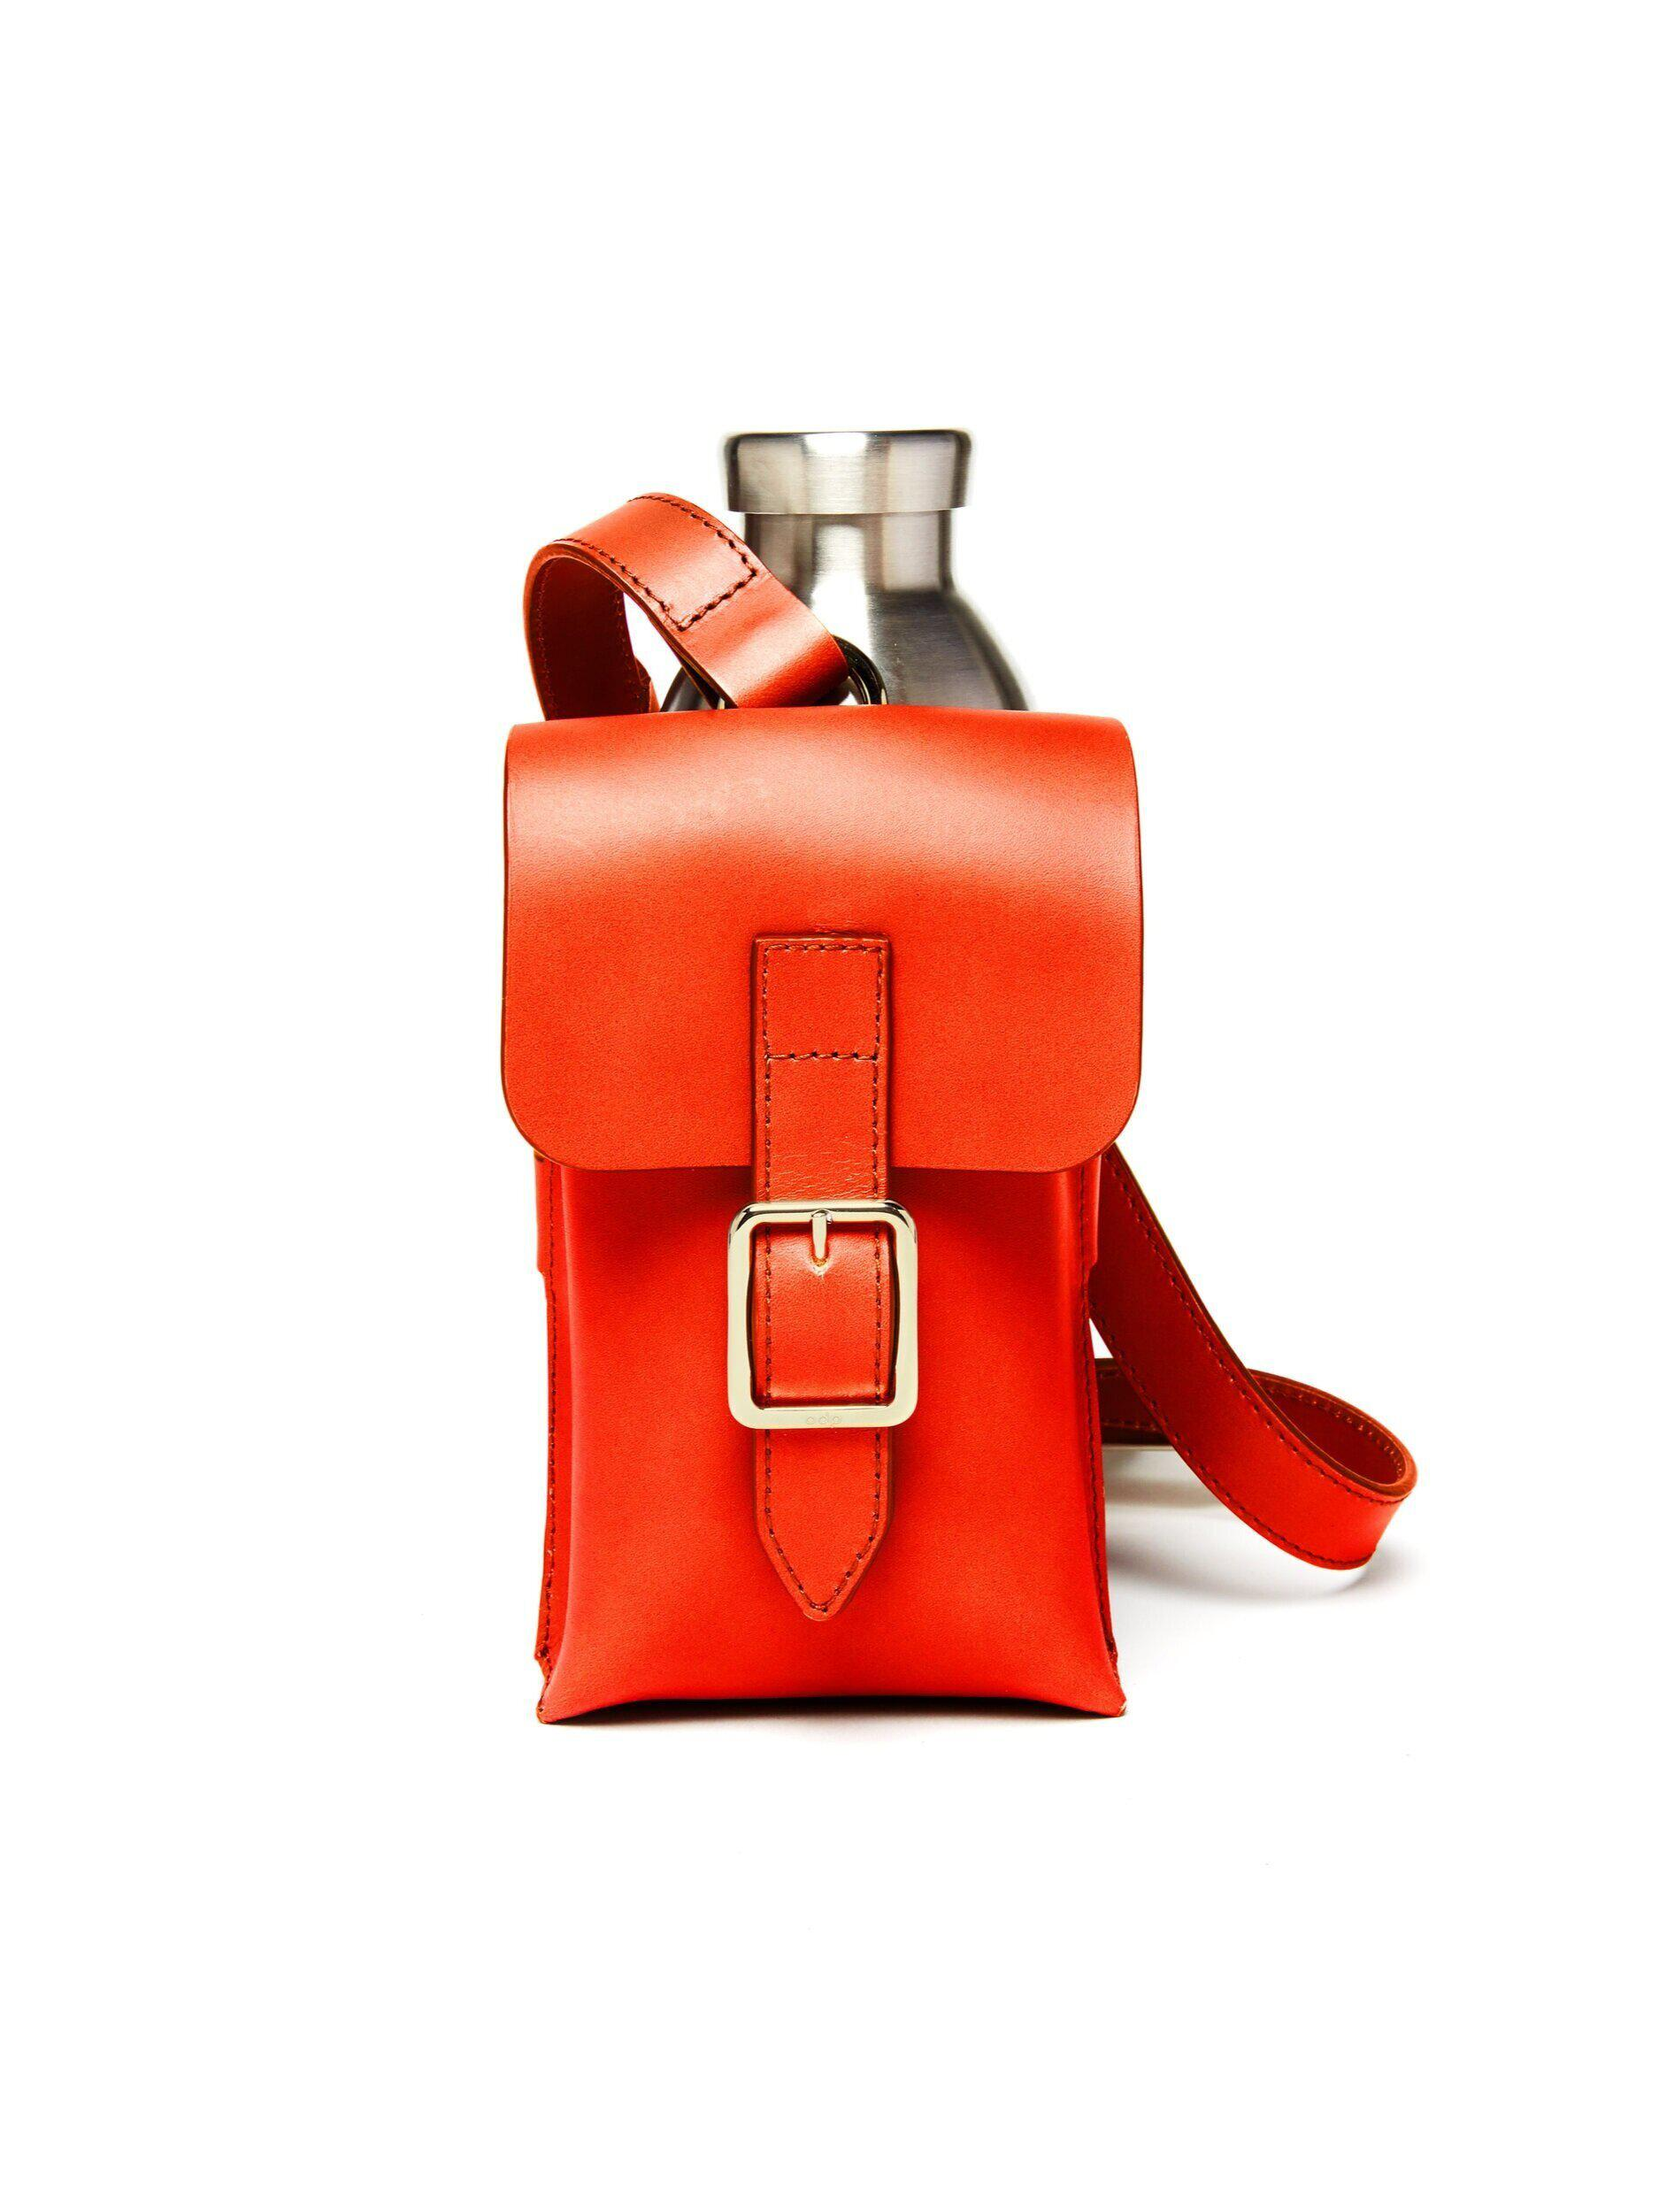 Bottle Bag with Bottle - Fiamma Leather 1